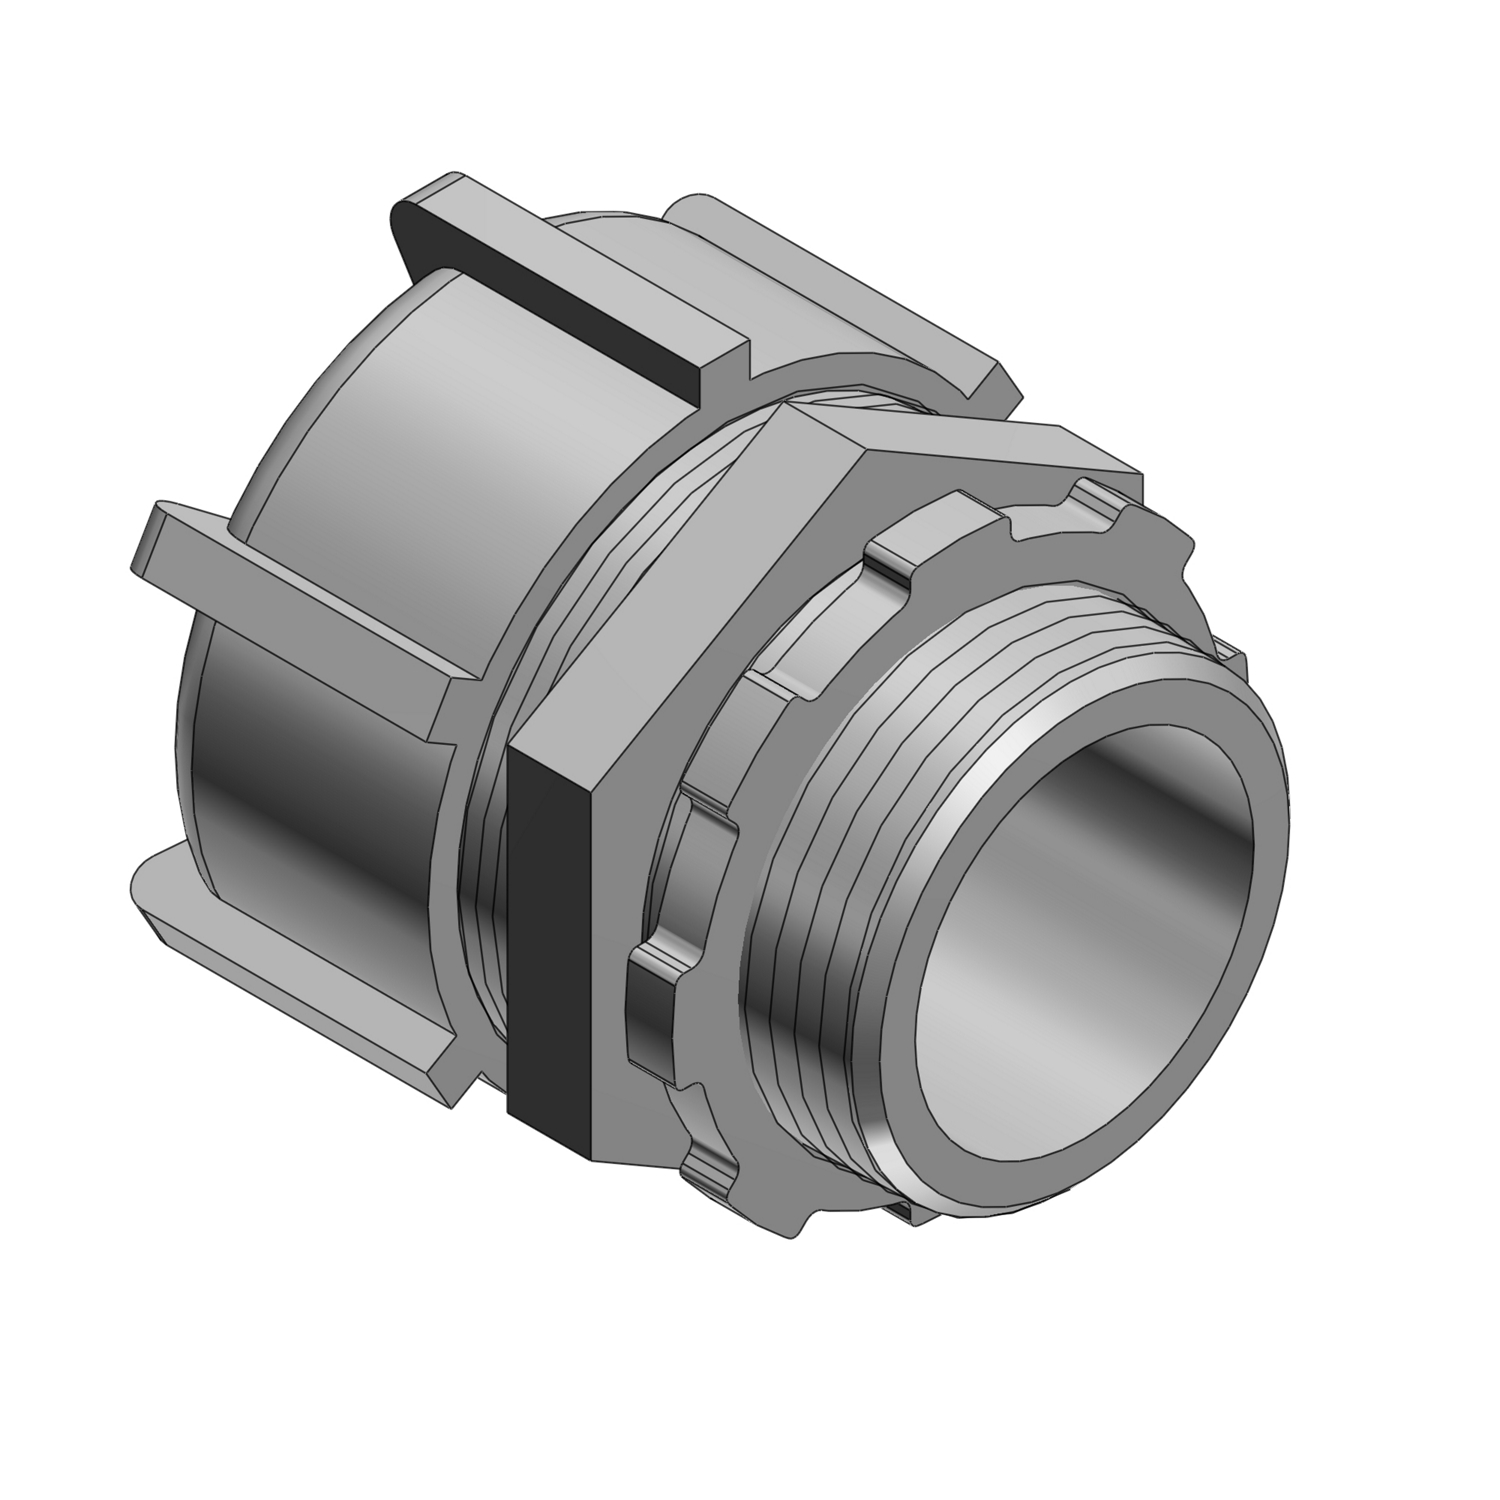 T&B Industrial Fitting 52 Series Flexible Liquidtight Conduit Connector, 3 in Trade, 90 deg, Malleable Iron